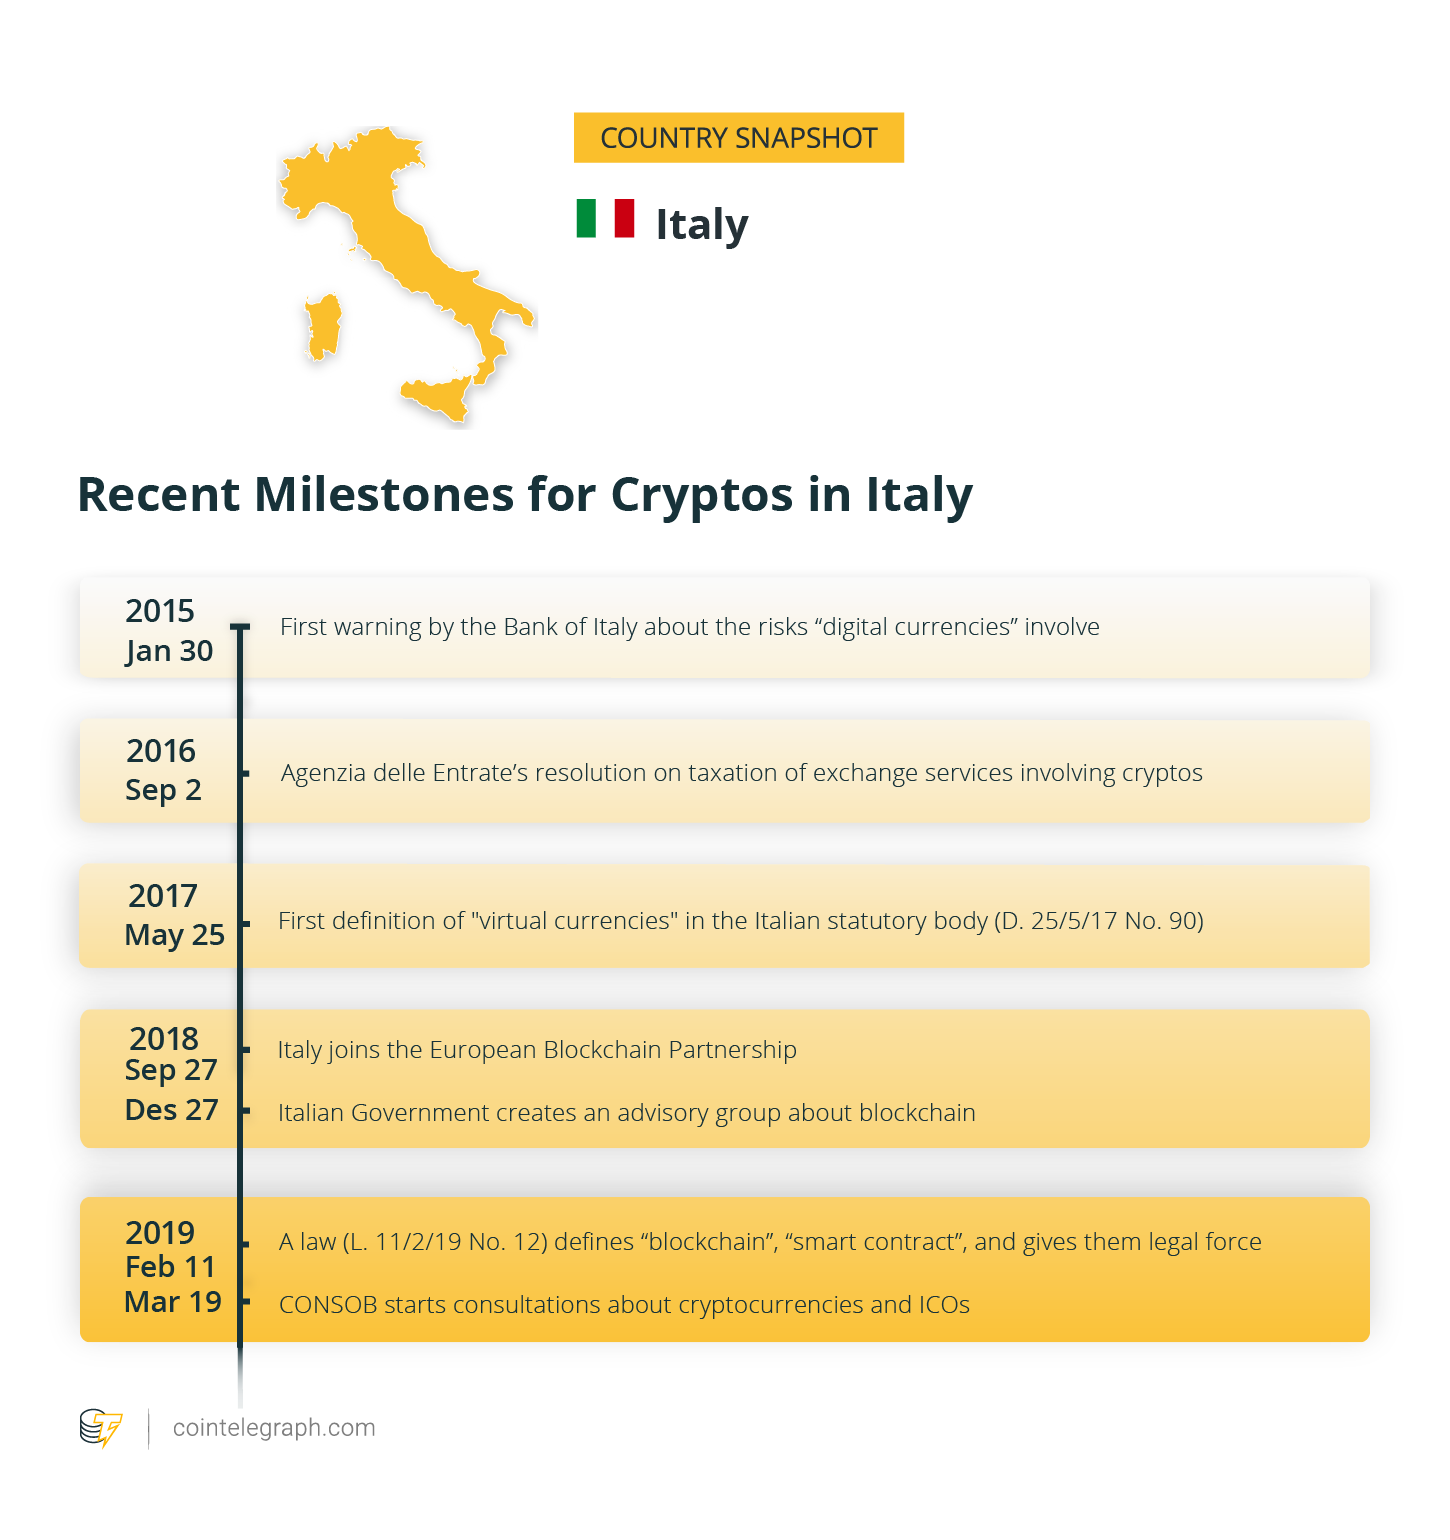 Recent Milestones for Cryptos in Italy